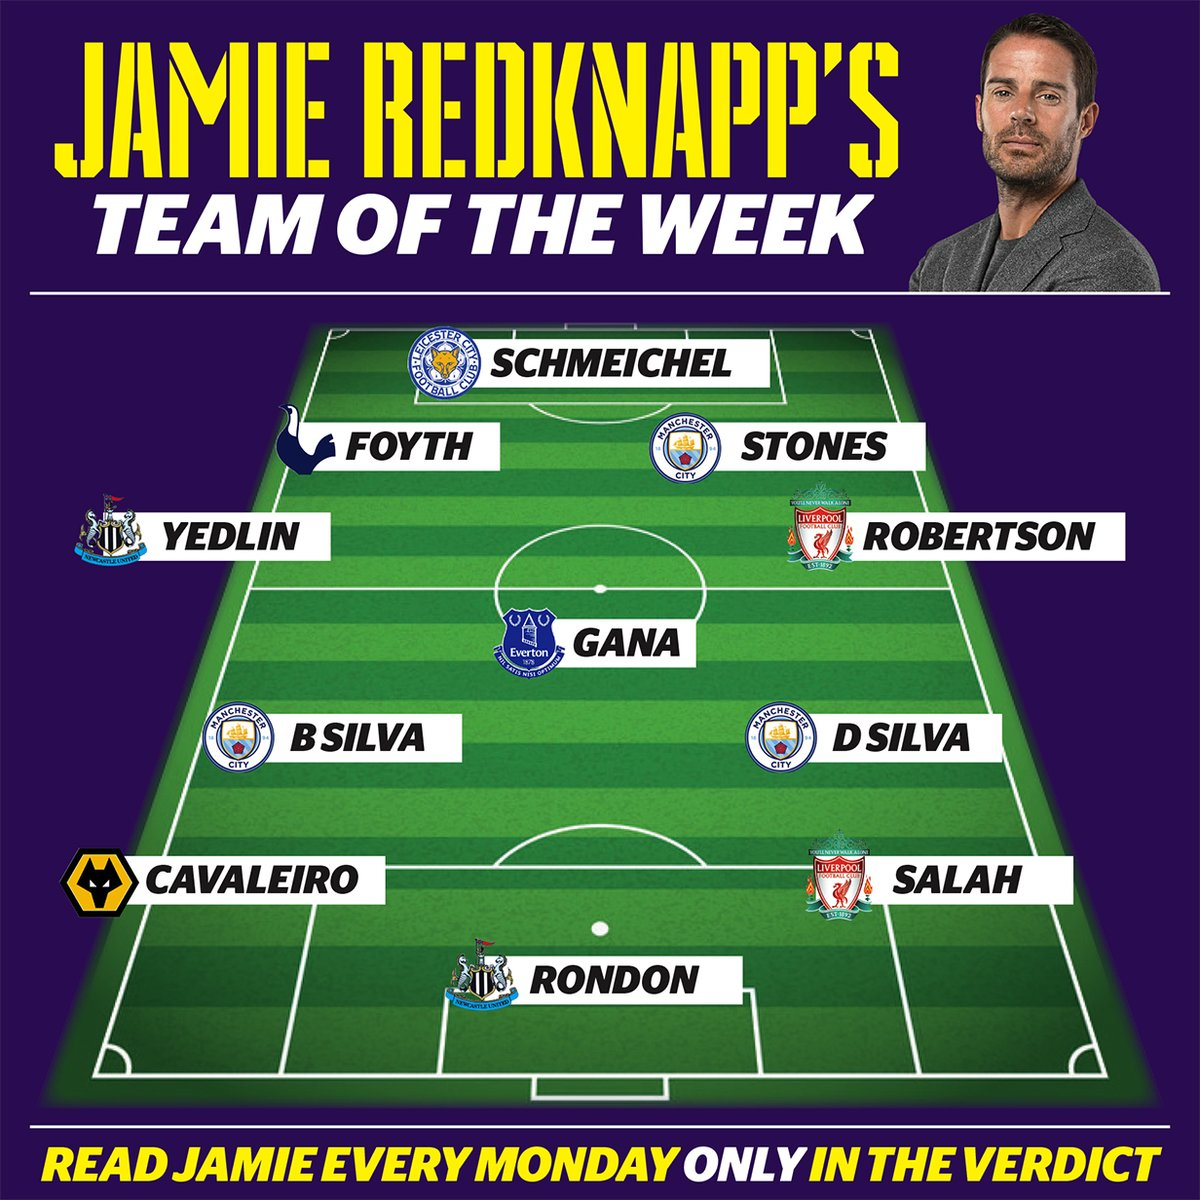 Redknapp Team of the Week Round 12